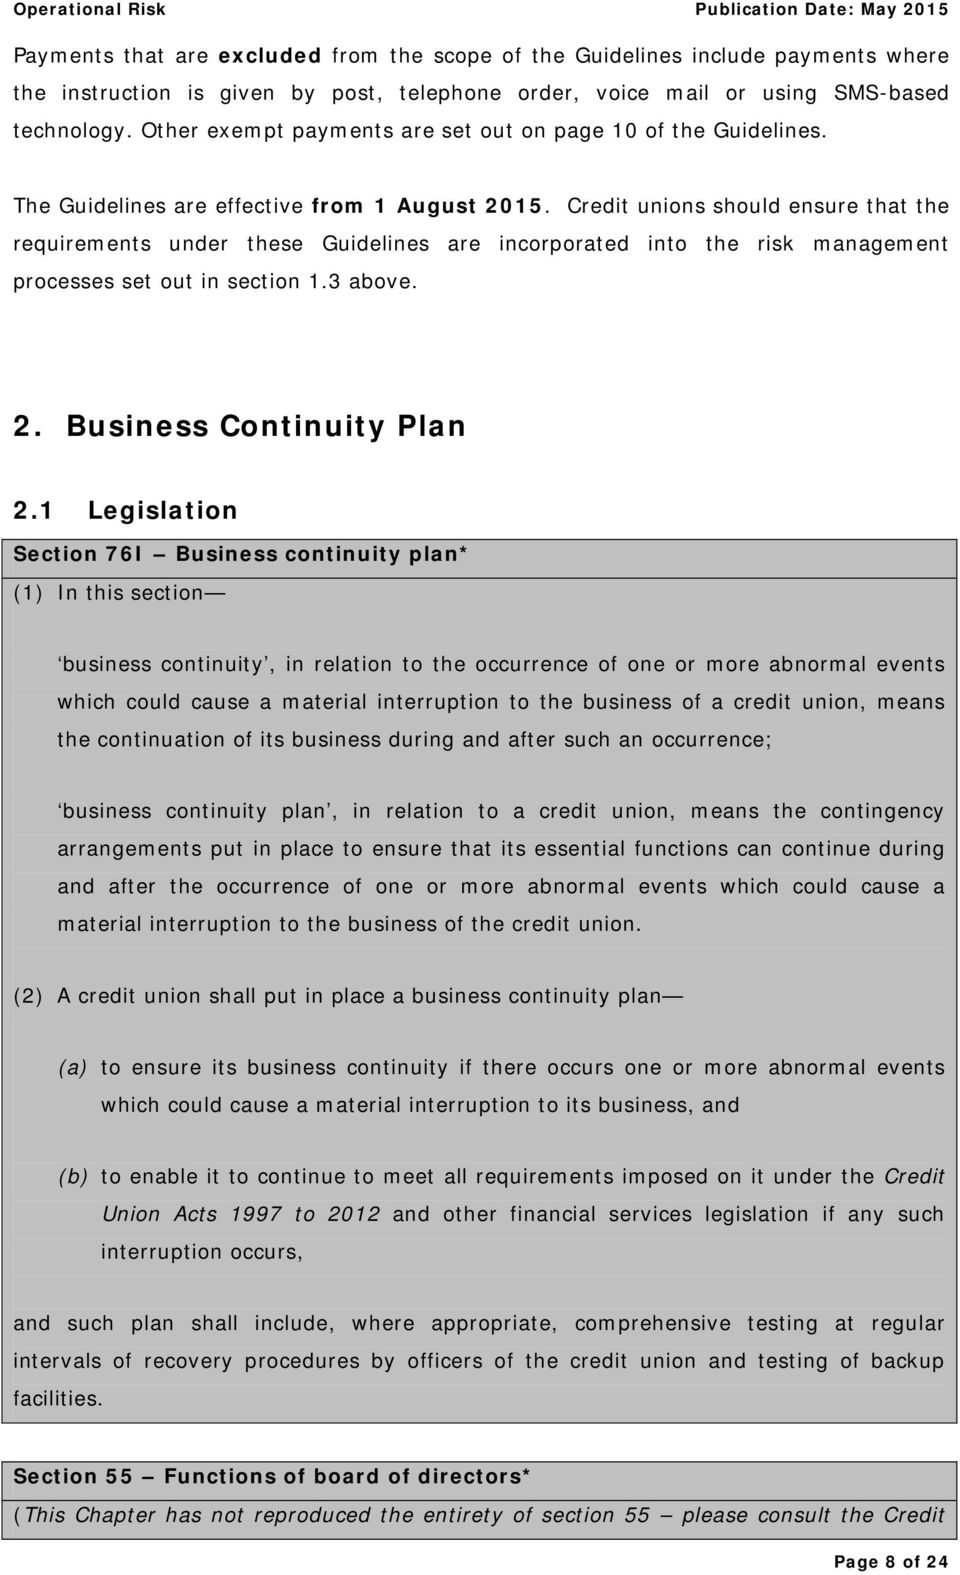 Credit unions should ensure that the requirements under these Guidelines are incorporated into the risk management processes set out in section 1.3 above. 2. Business Continuity Plan 2.